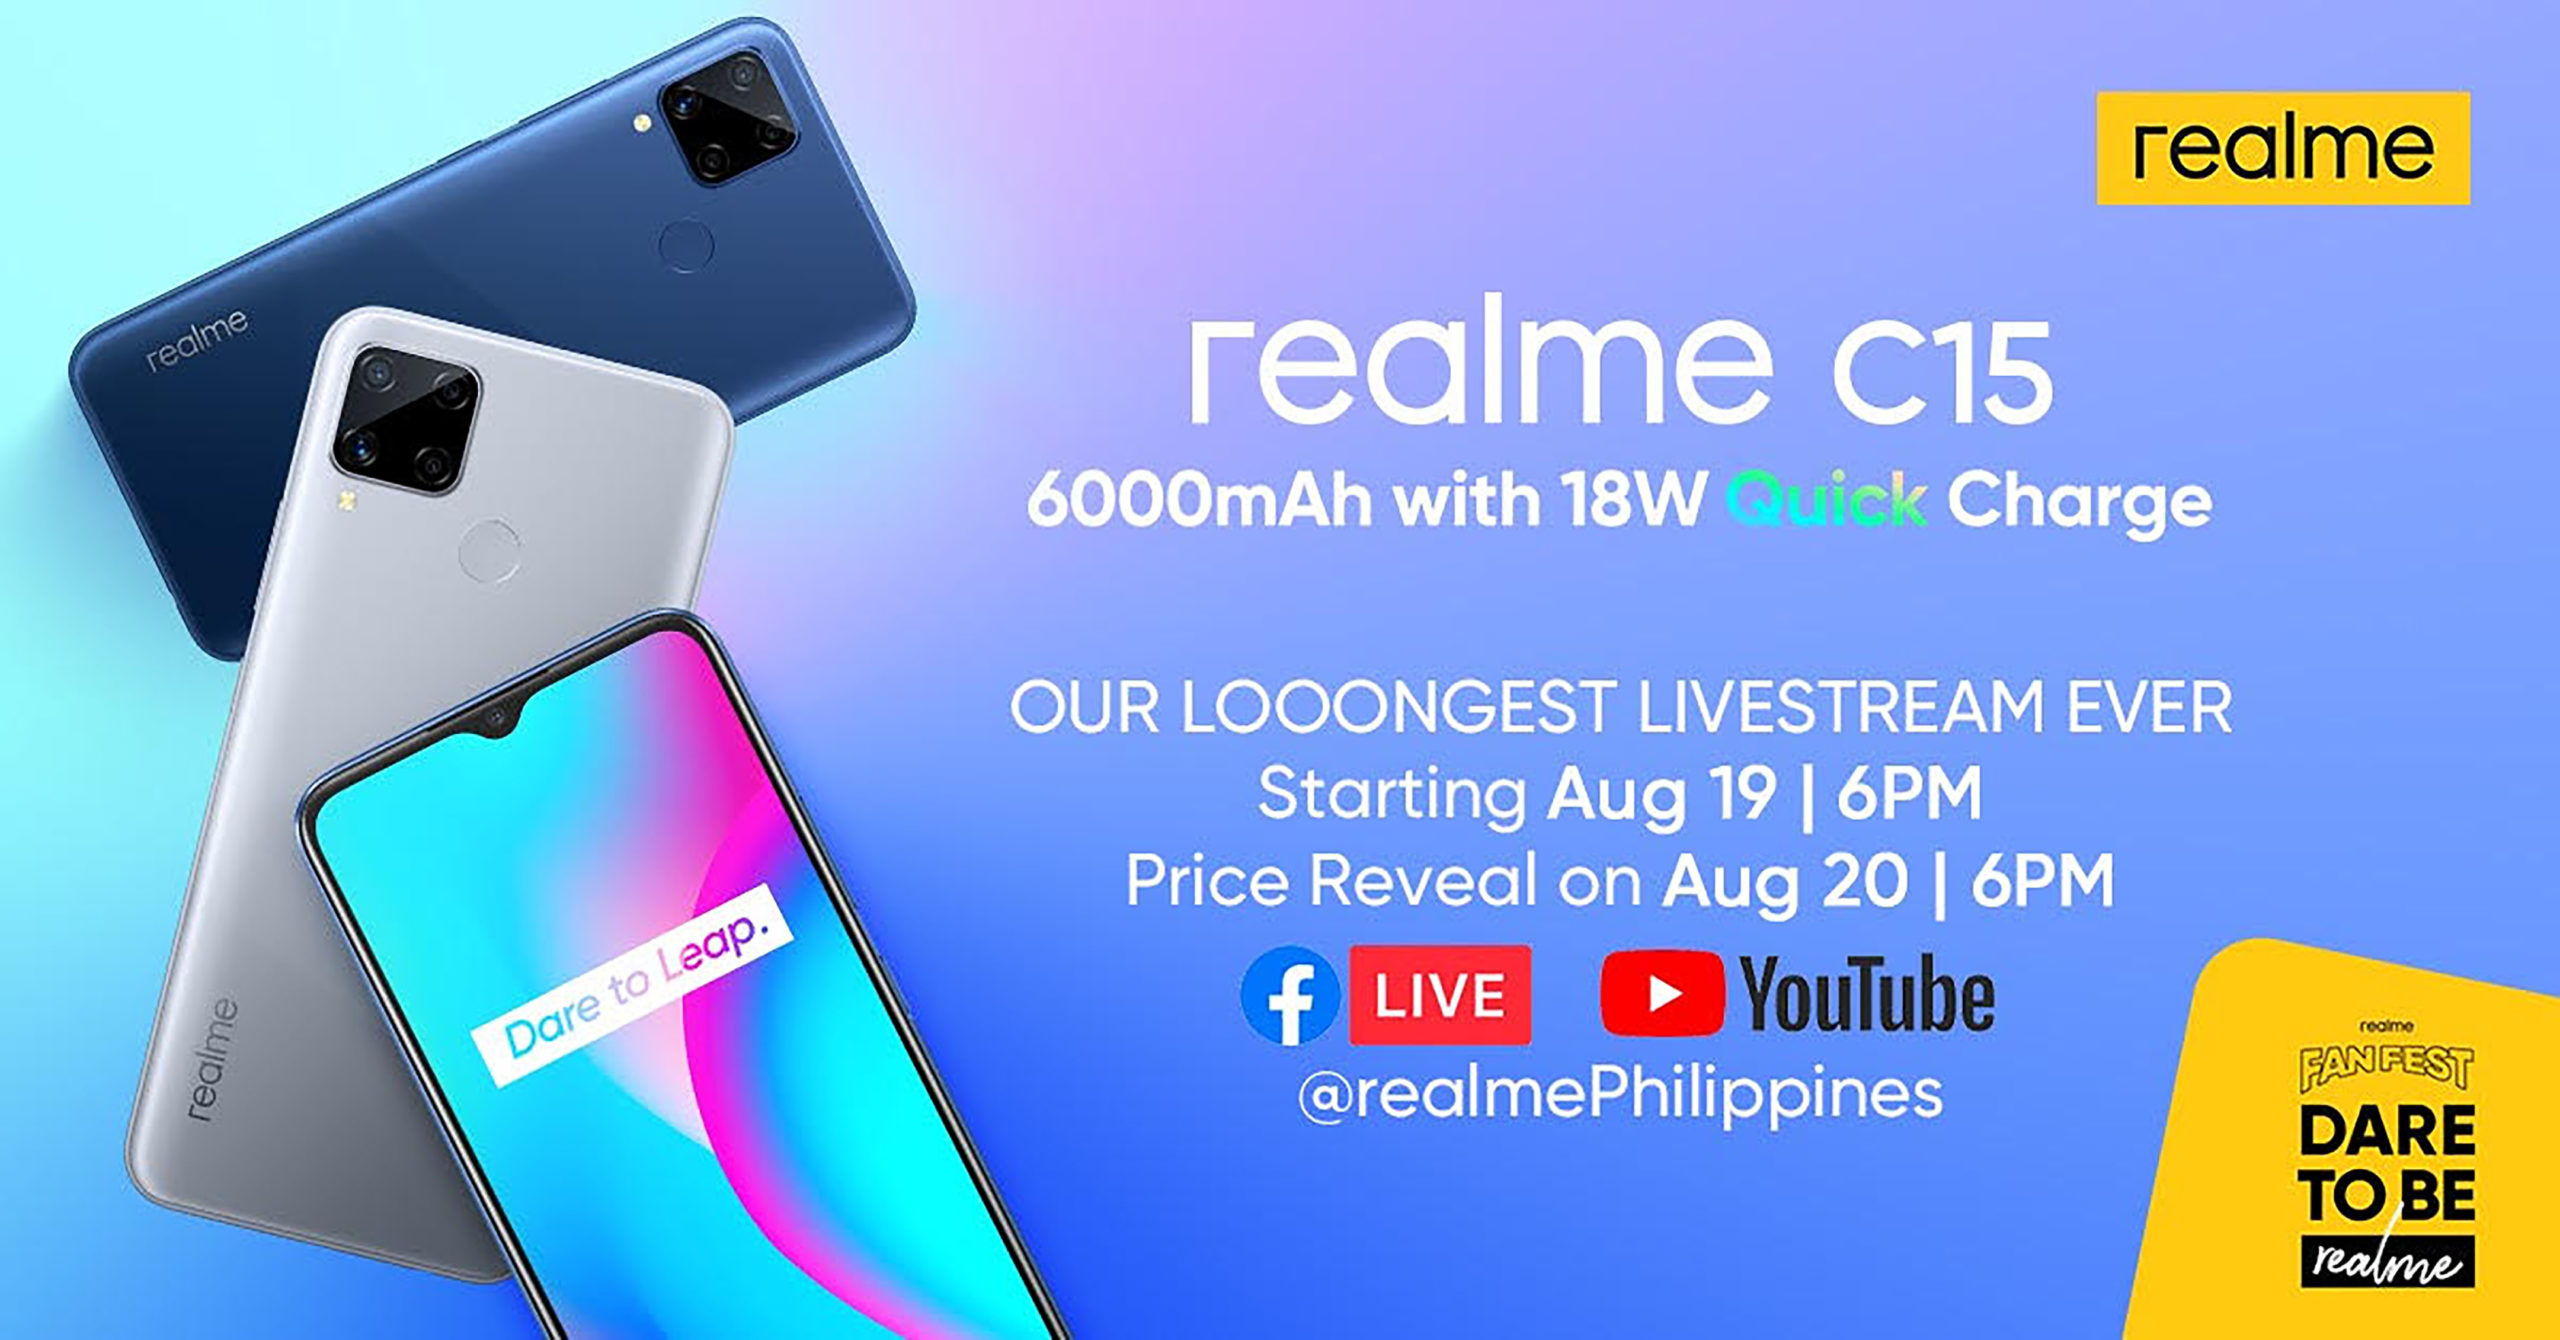 realme Philippines set to launch its 6000mAh, 18W Quick Charge realme C15 on August 20